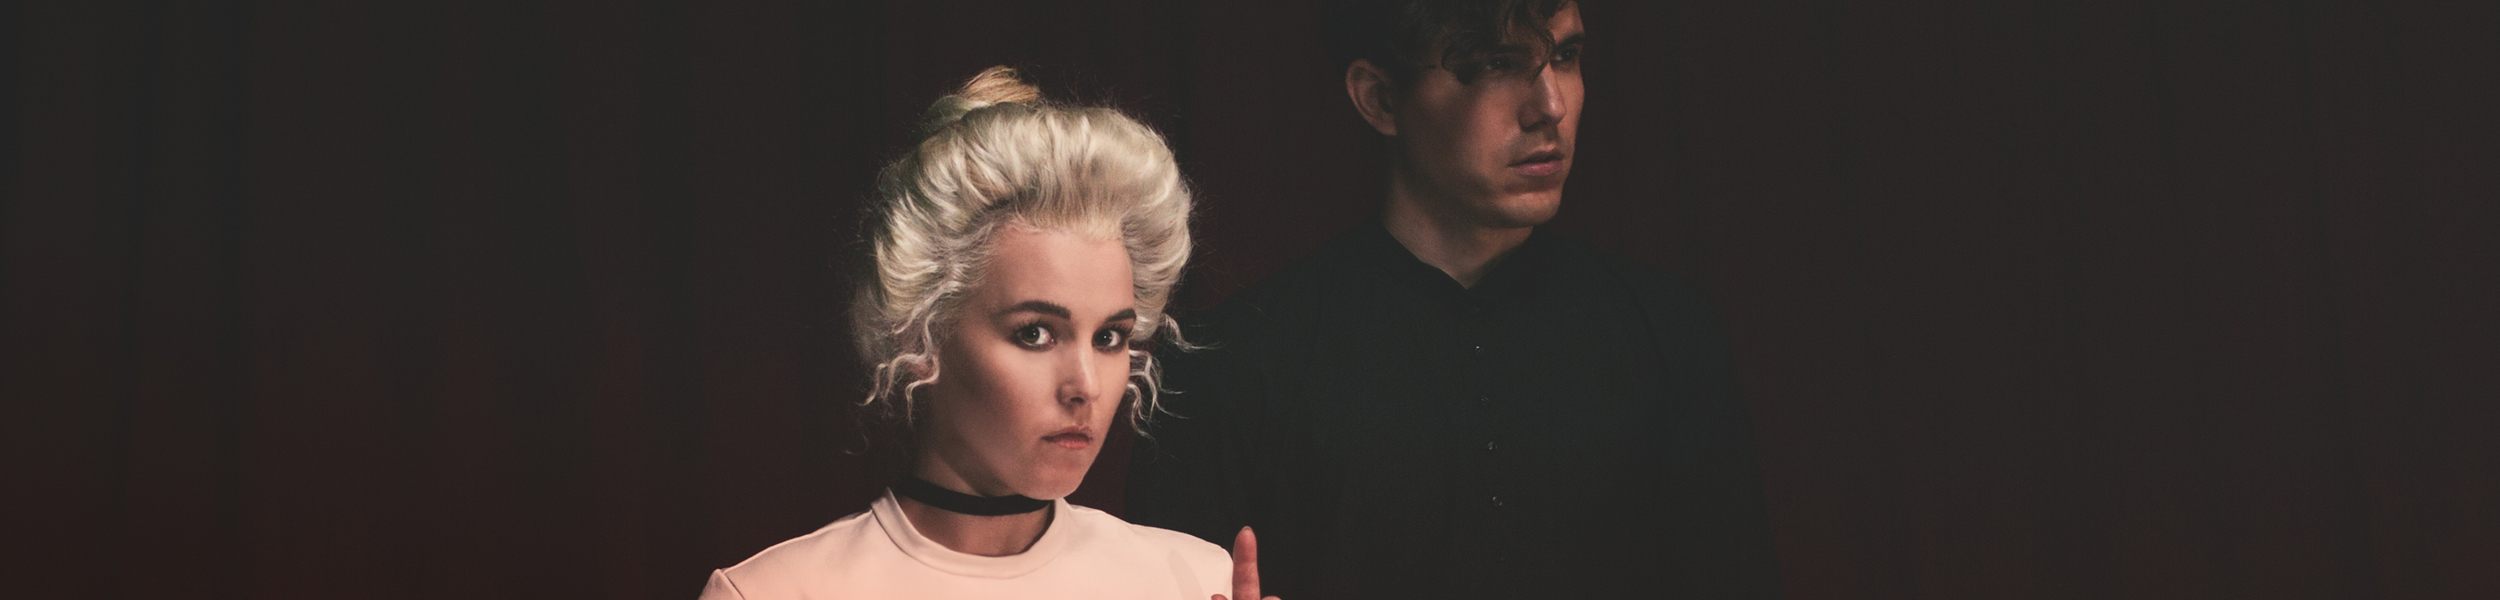 Purity Ring - North American and European Tour Dates